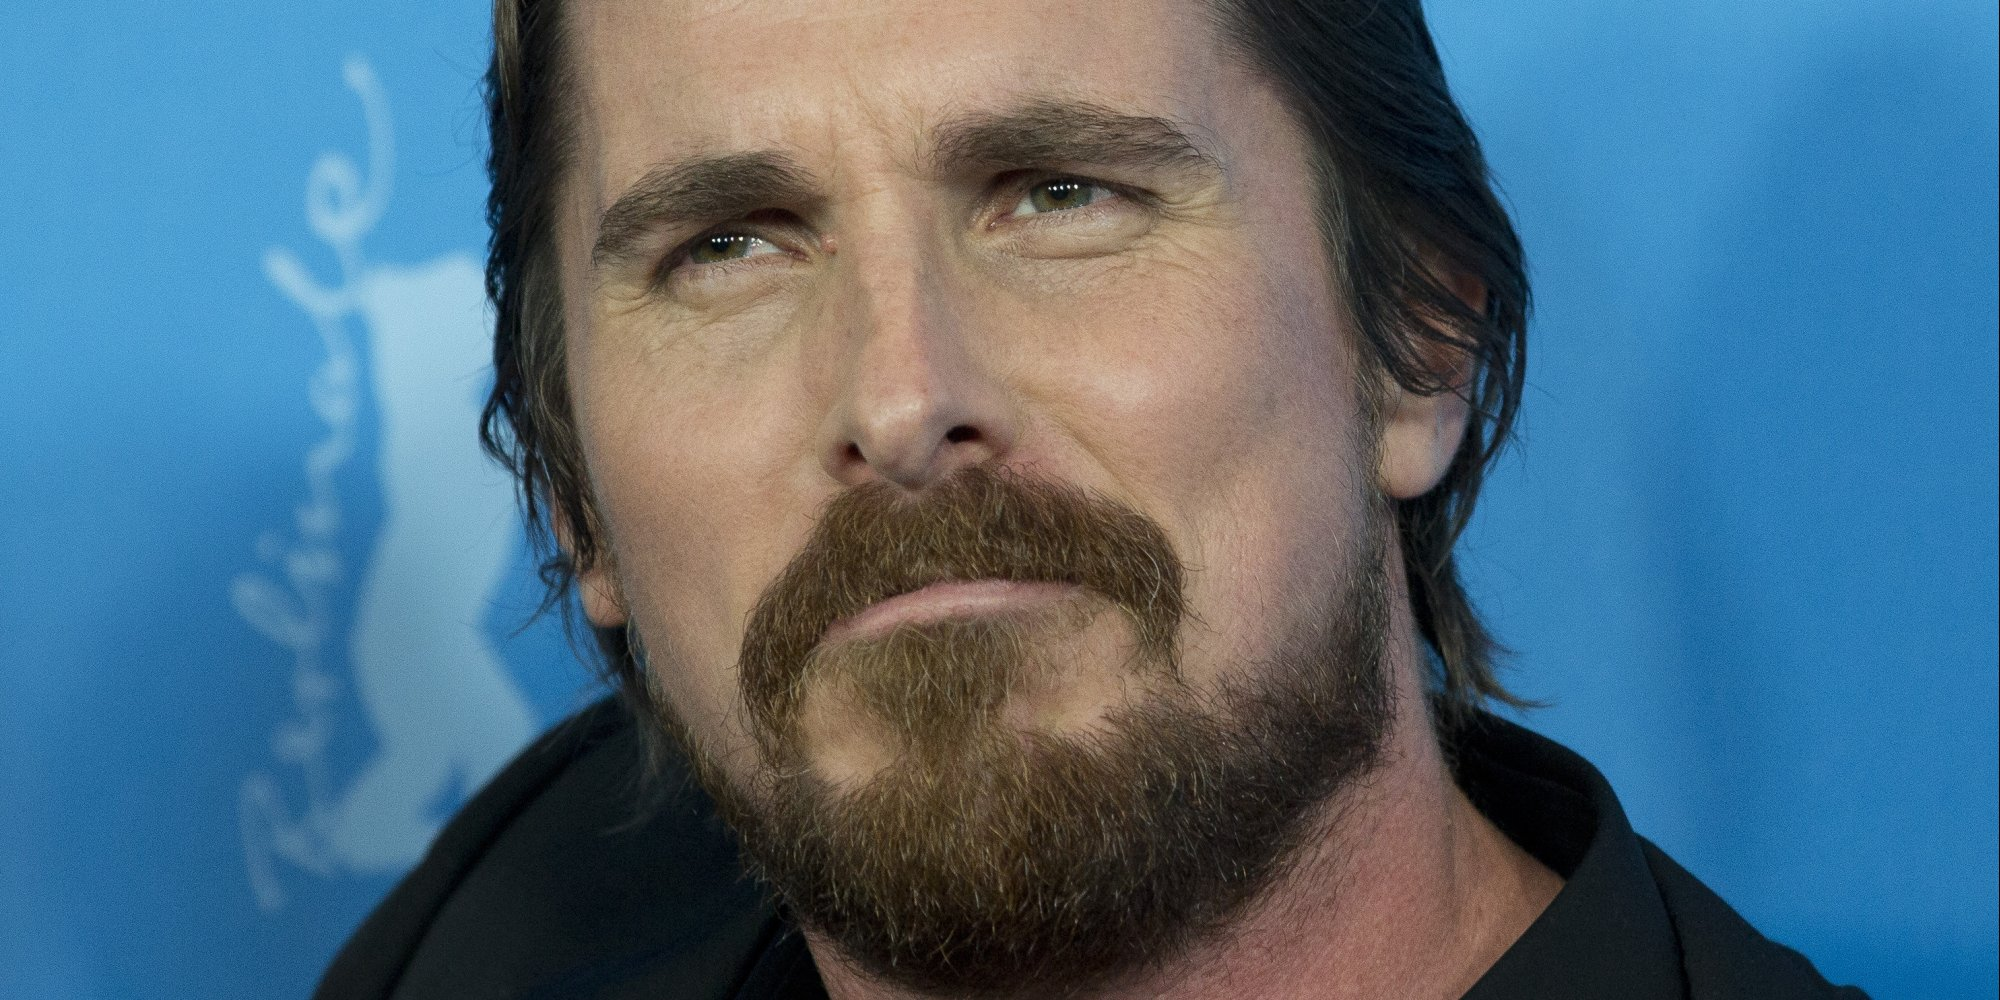 Christian Bale HQ wallpapers